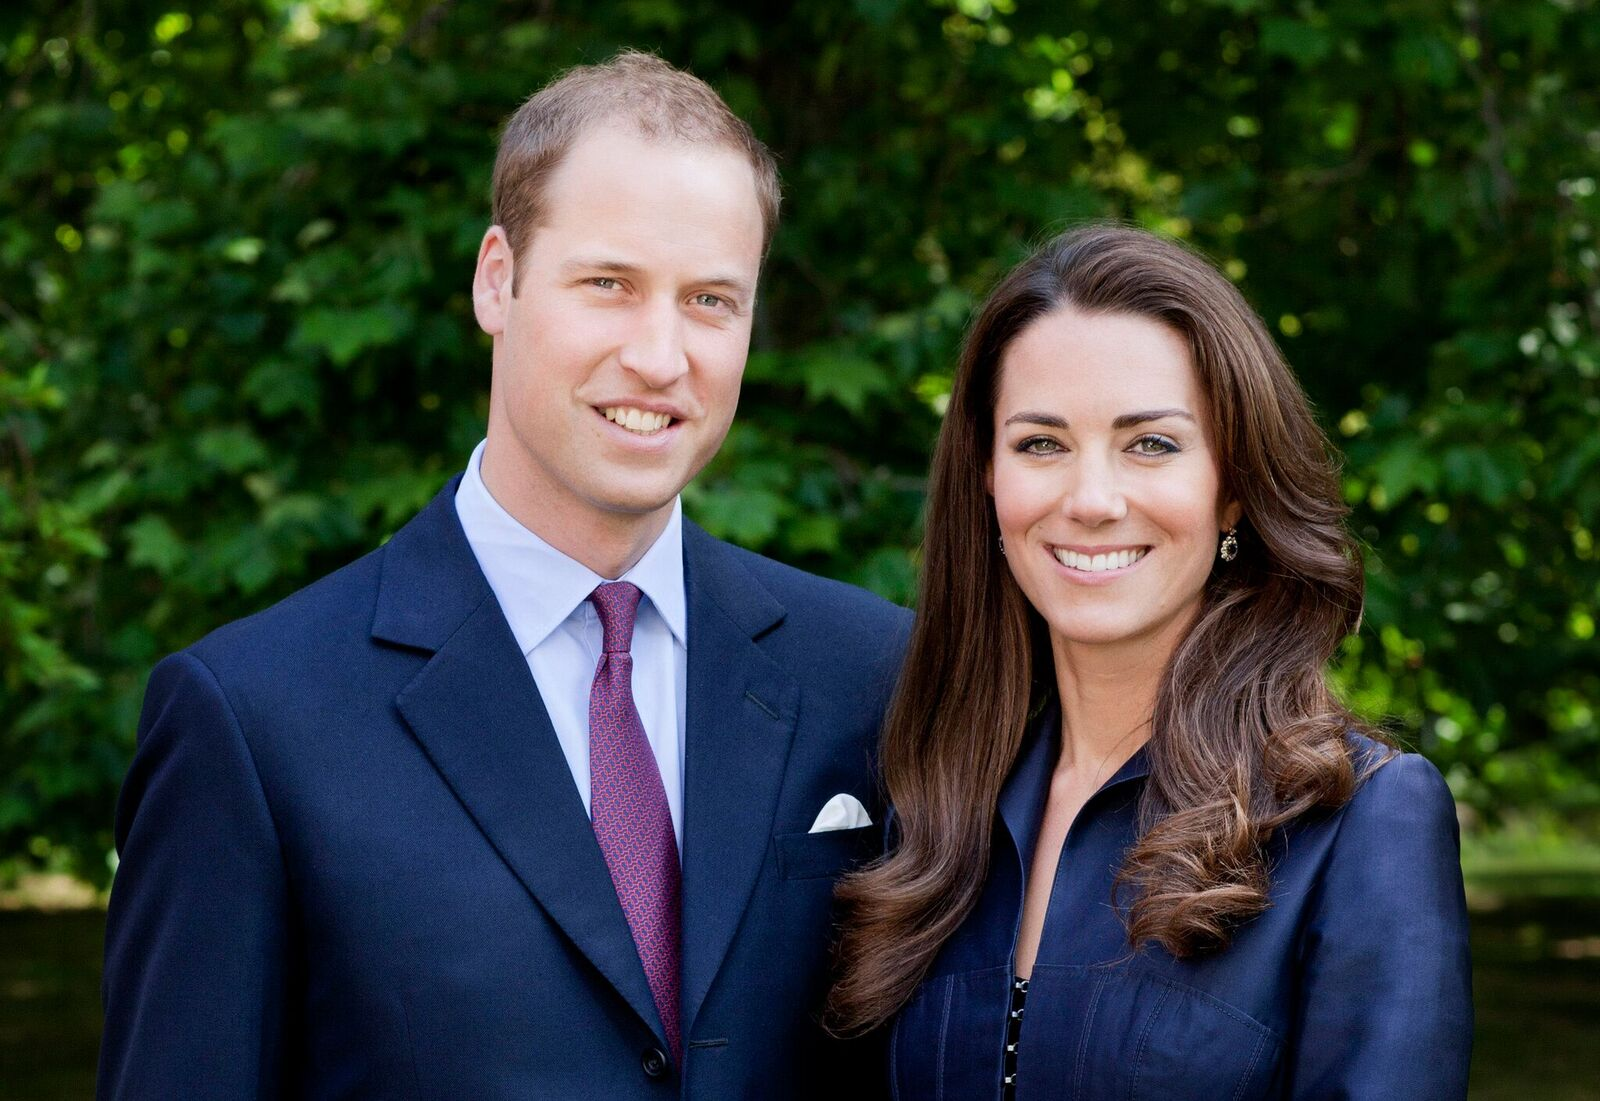 Prince William, Duke of Cambridge and Catherine, Duchess of Cambridge pose for the official tour portrait for their trip to Canada and California in the Garden's of Clarence House on June 3, 2011 in London | Photo: Getty Images